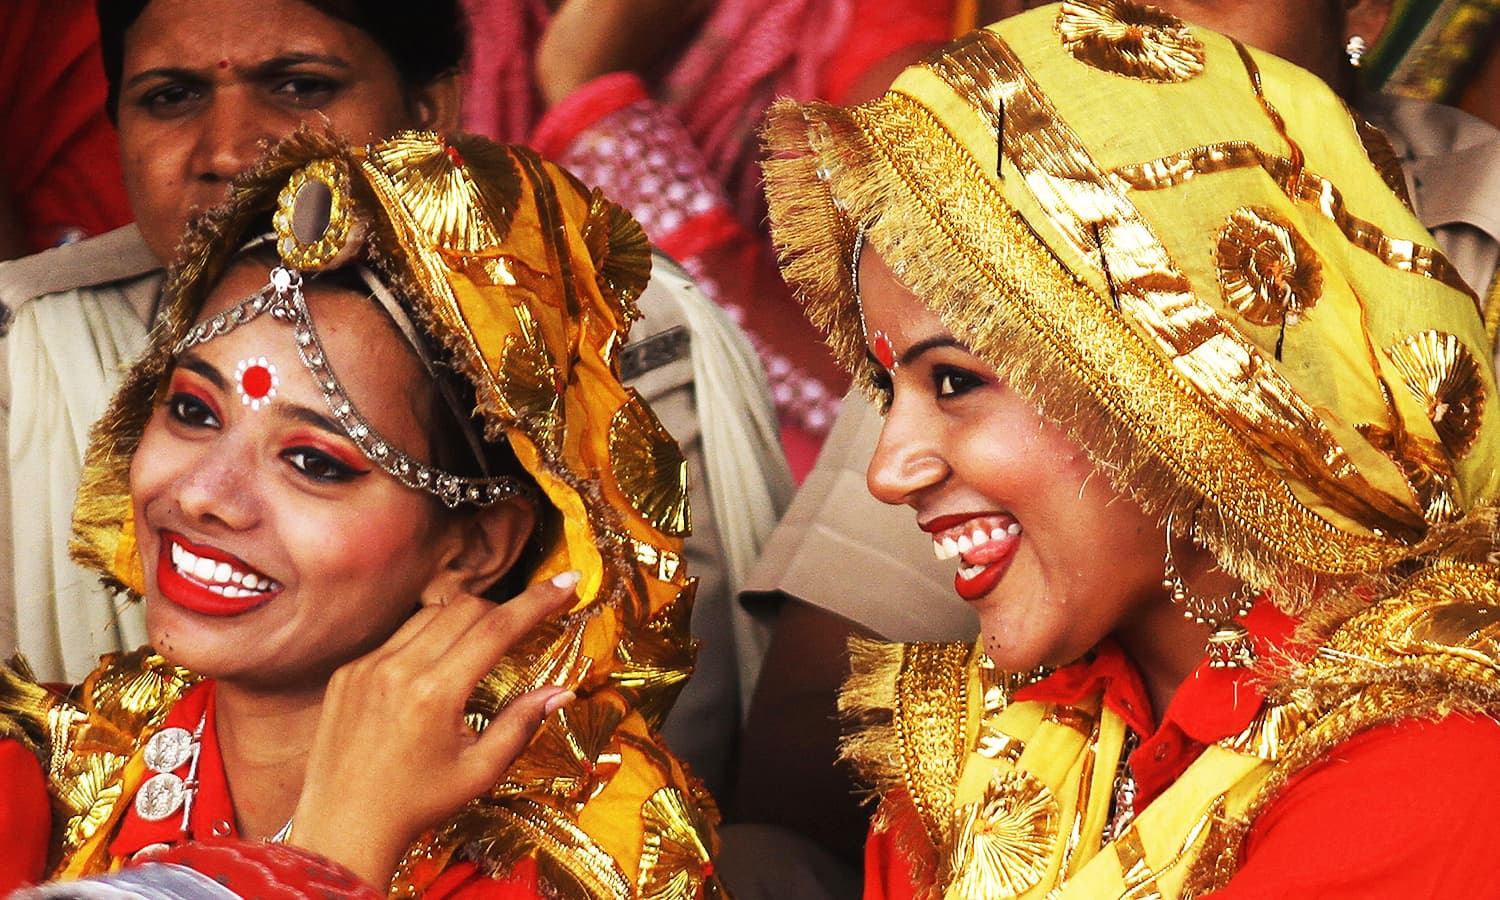 Participants share a moment after performing at a cultural program during India's Independence Day celebrations in Ajmer, in the desert state of Rajasthan, India, August 15, 2016. ─ Reuters